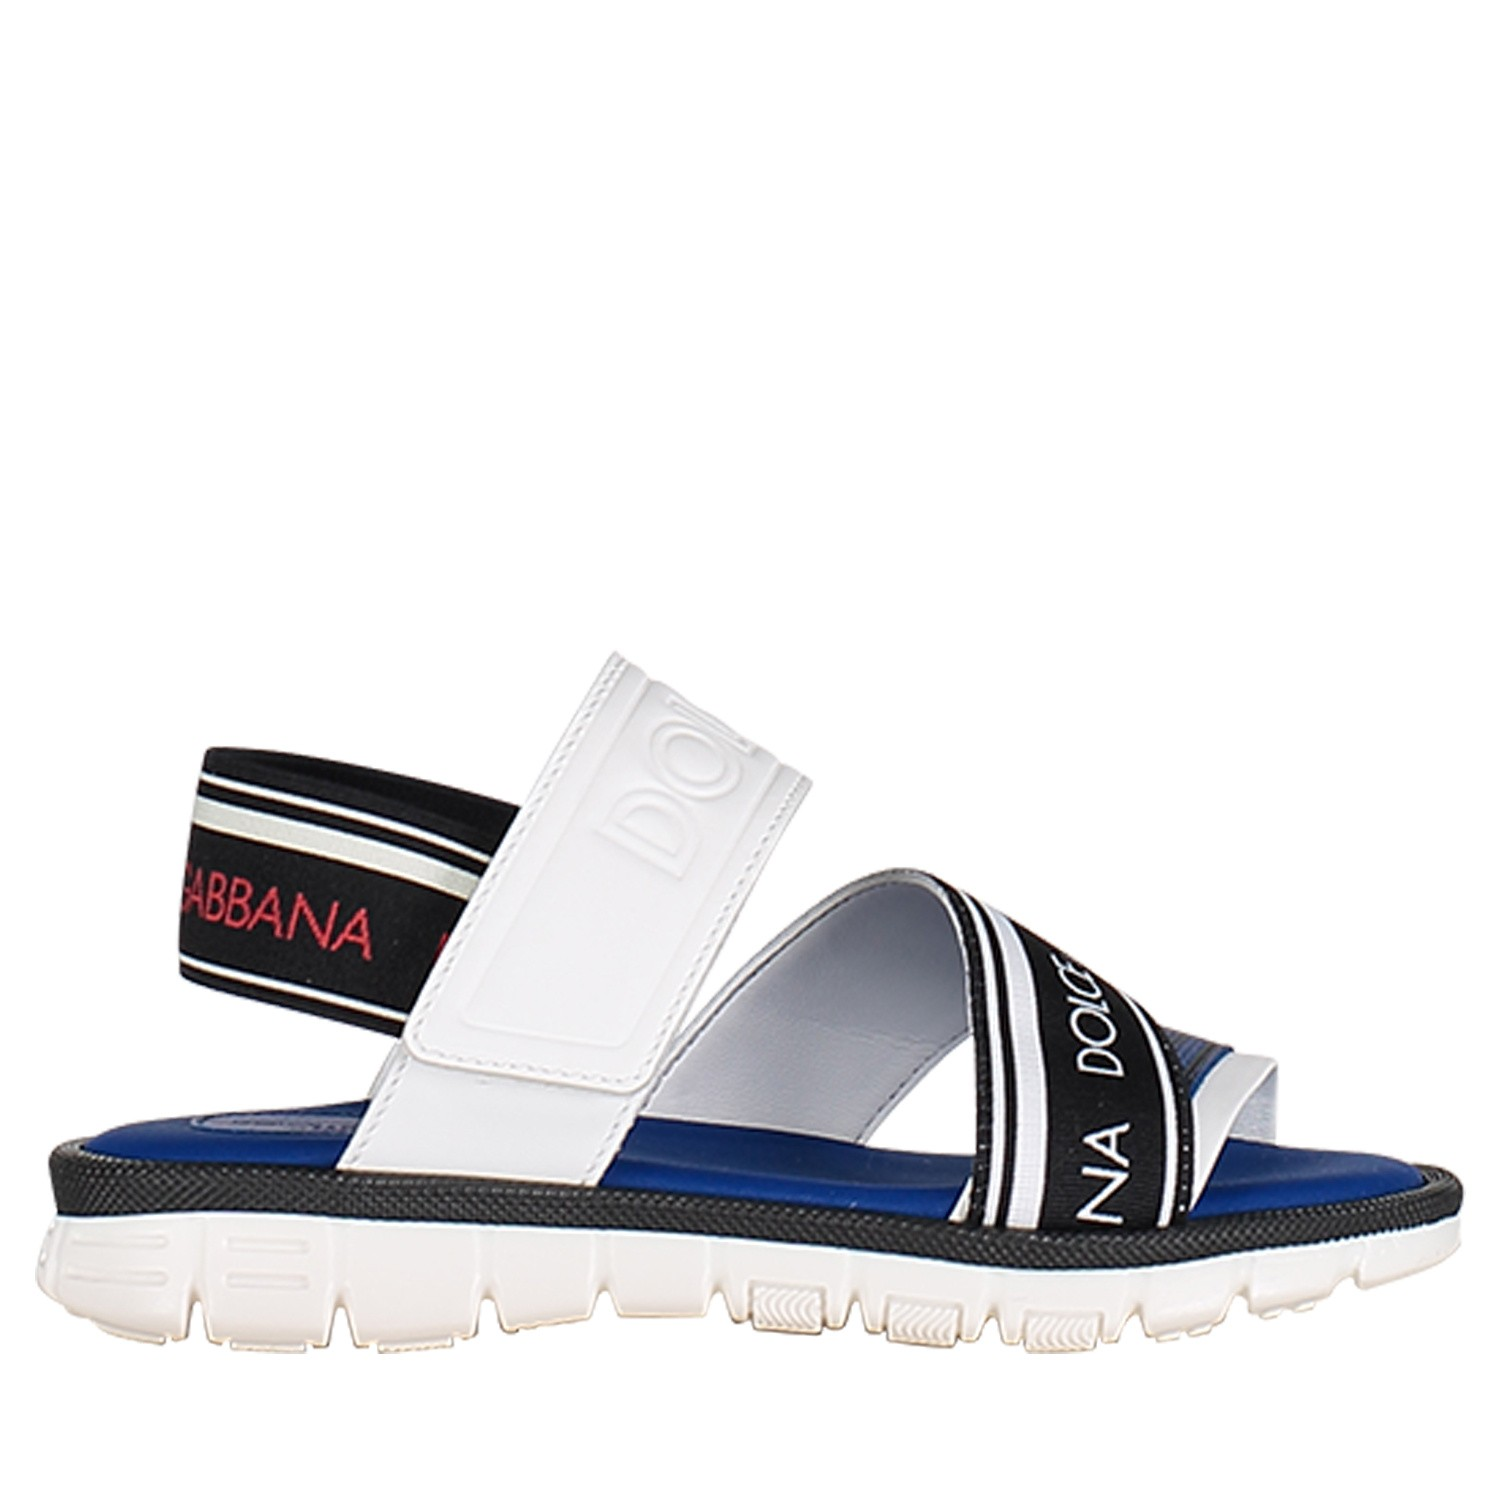 Picture of Dolce & Gabbana DA0704 kids sandals white